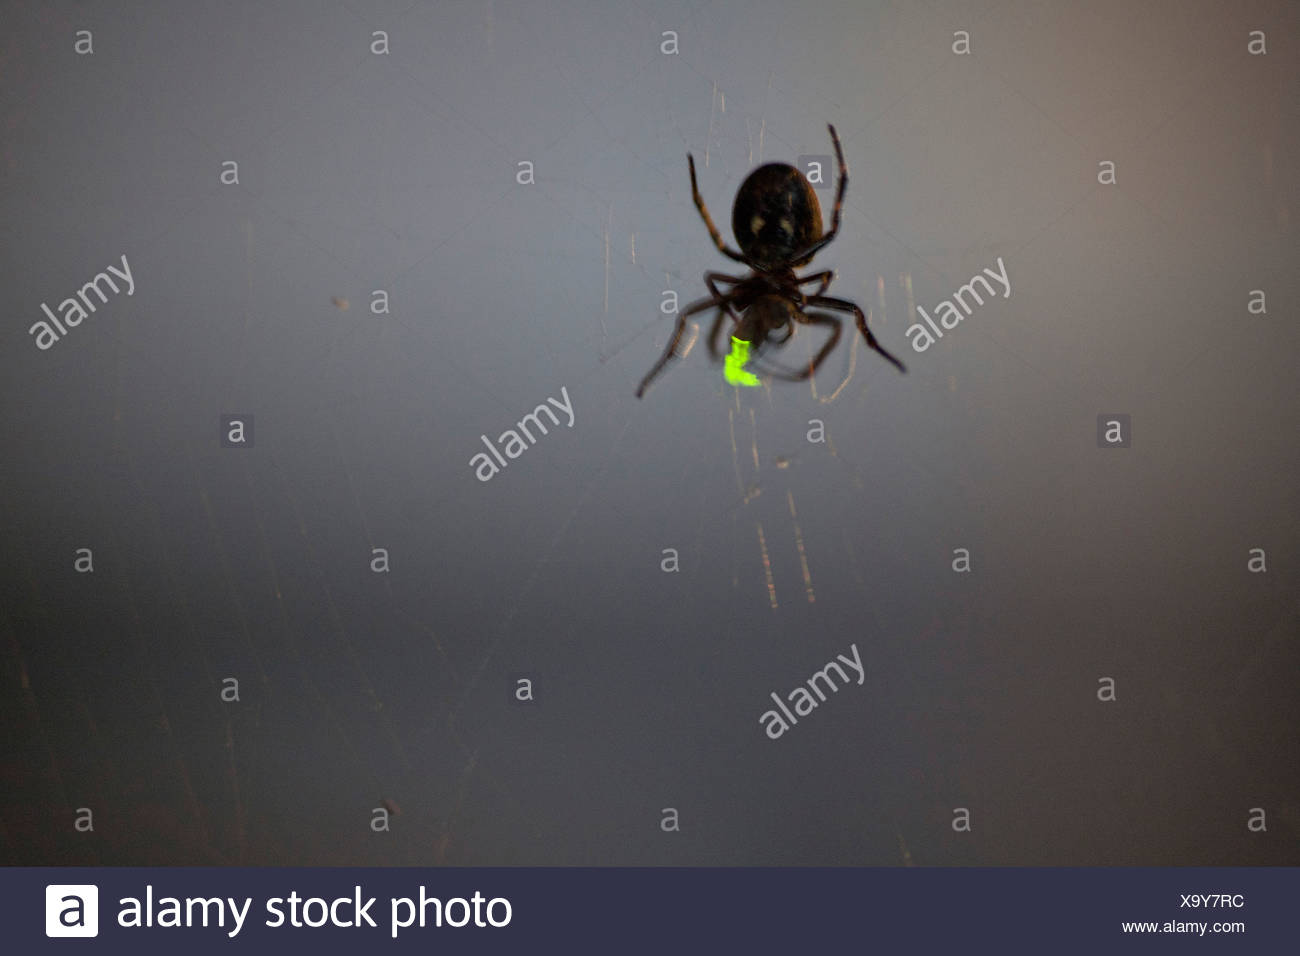 Firefly Insect At Night Glowing Fireflies Stock Photos And Glowing Fireflies Stock